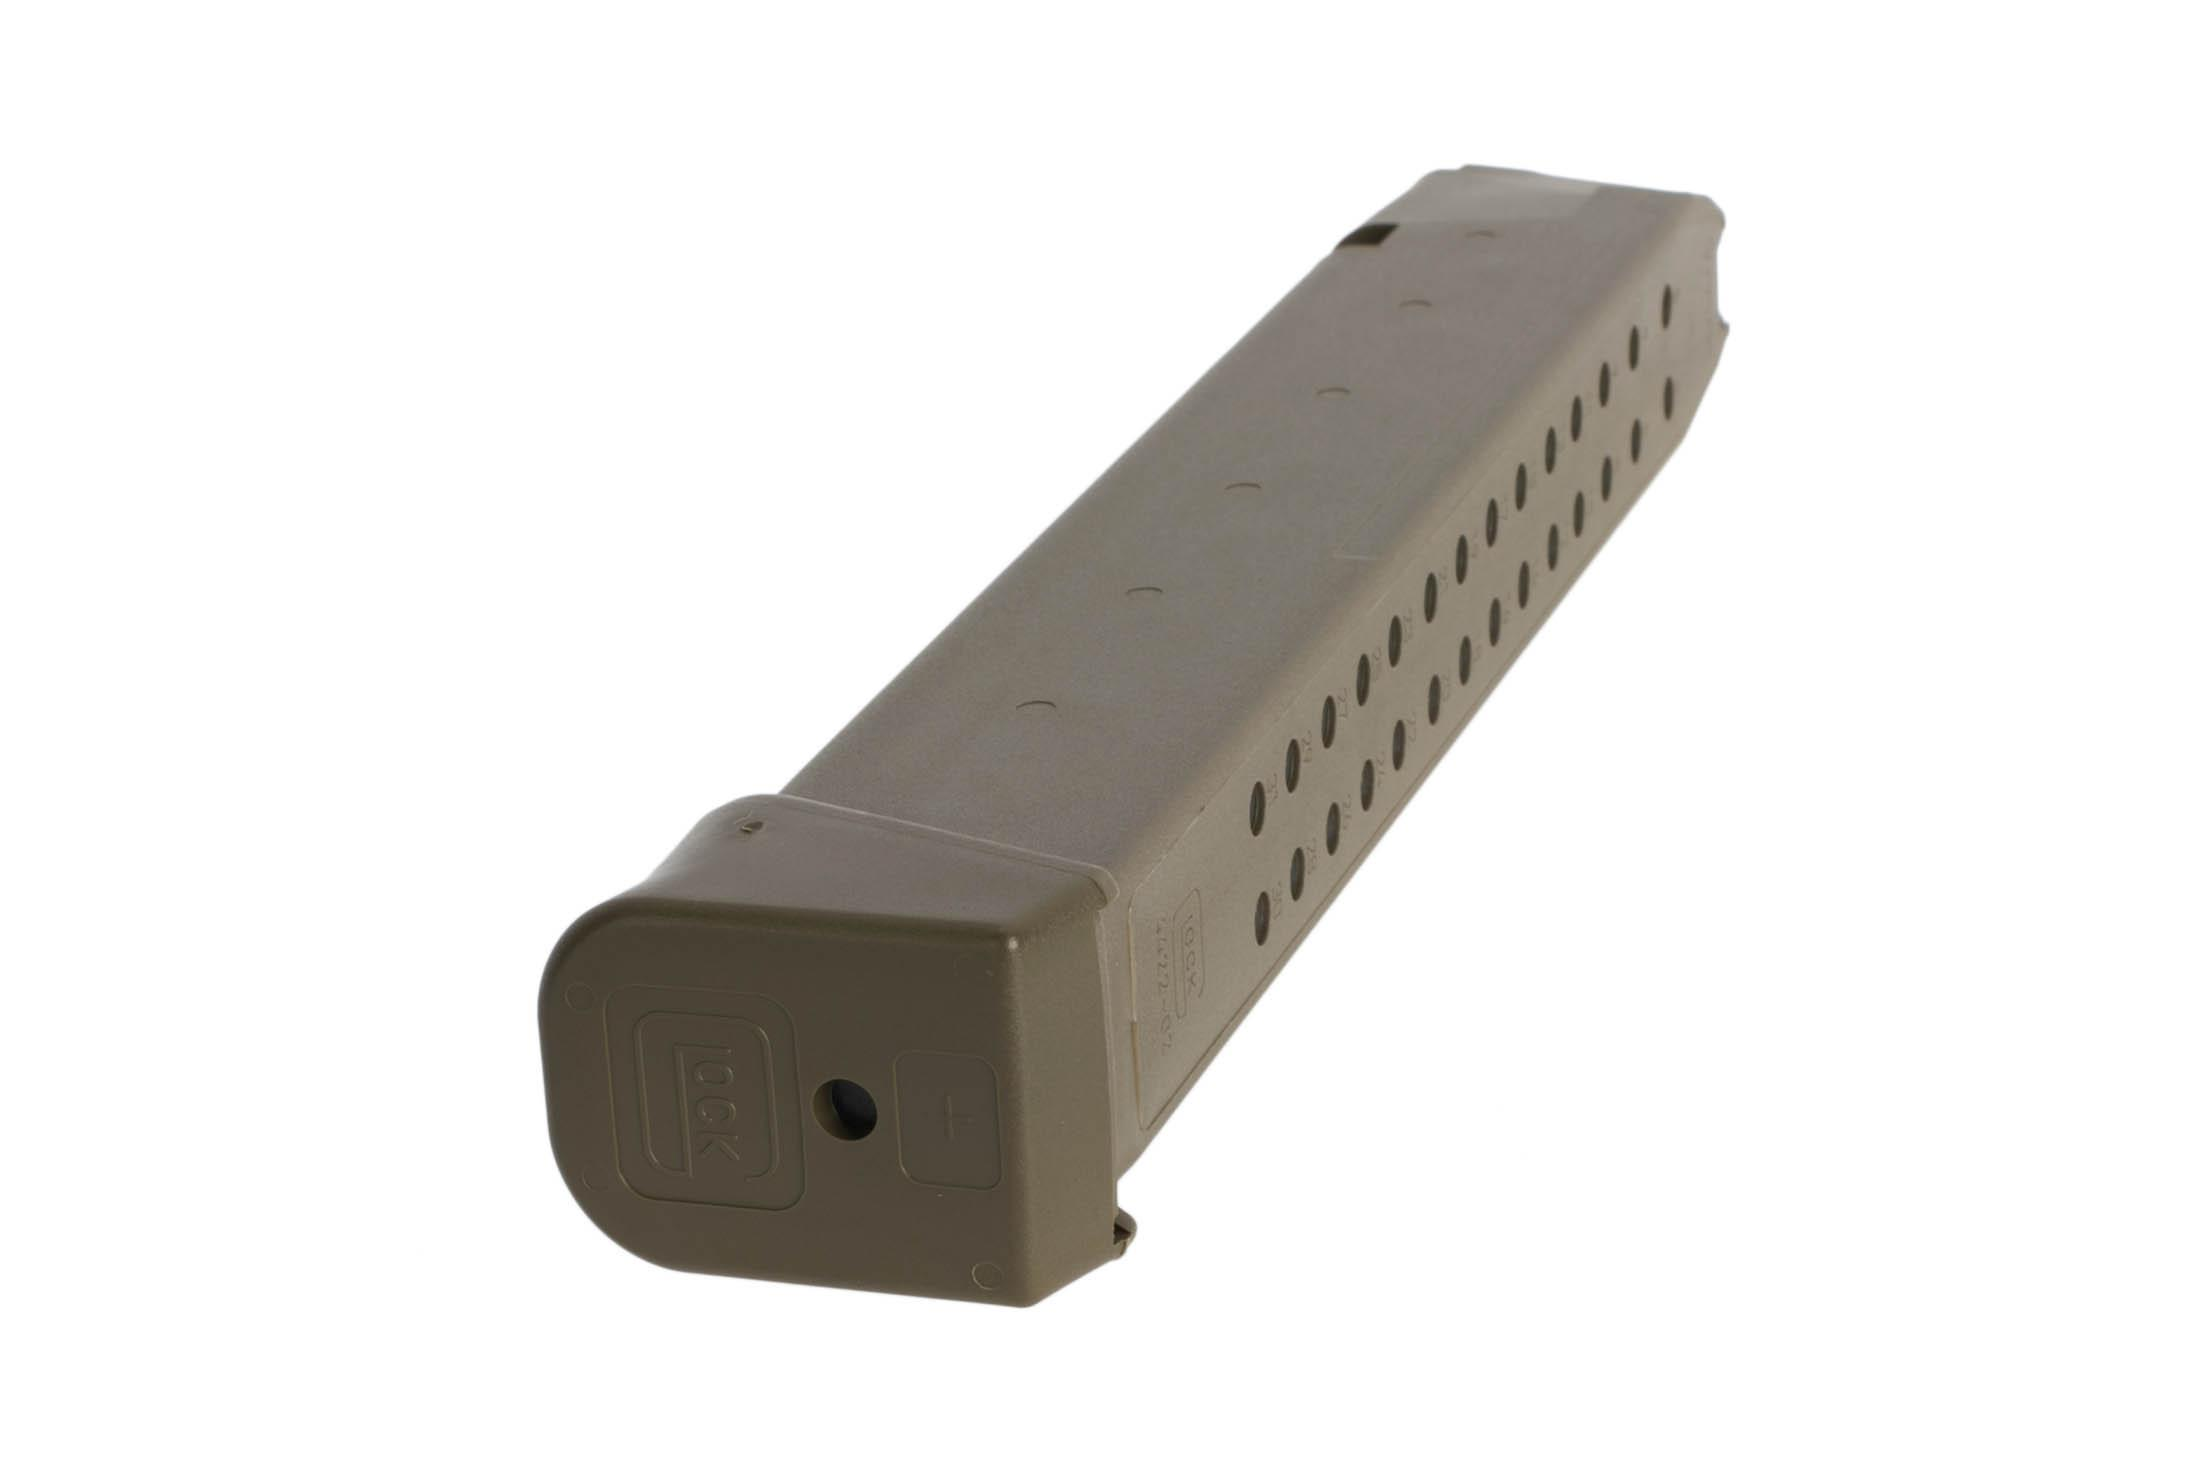 Glock high capacity OEM 9mm Gen 5 G17 pistol magazine with Plus 2 base plate and ODG polymer body with steel reinforced core.